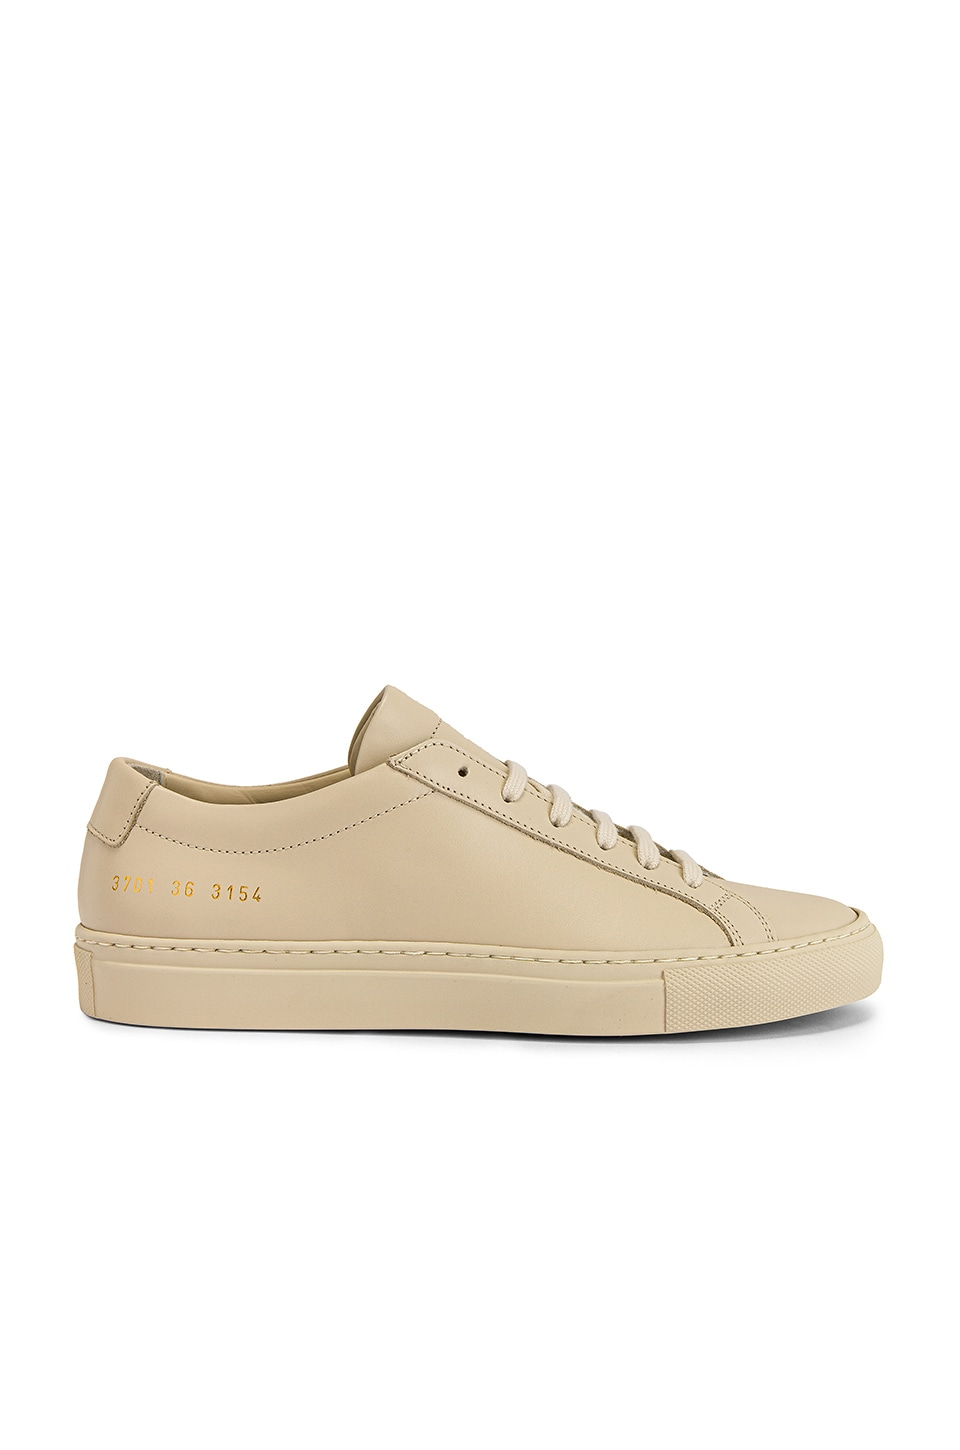 Common Projects Original Achilles Low Sneaker in Off White